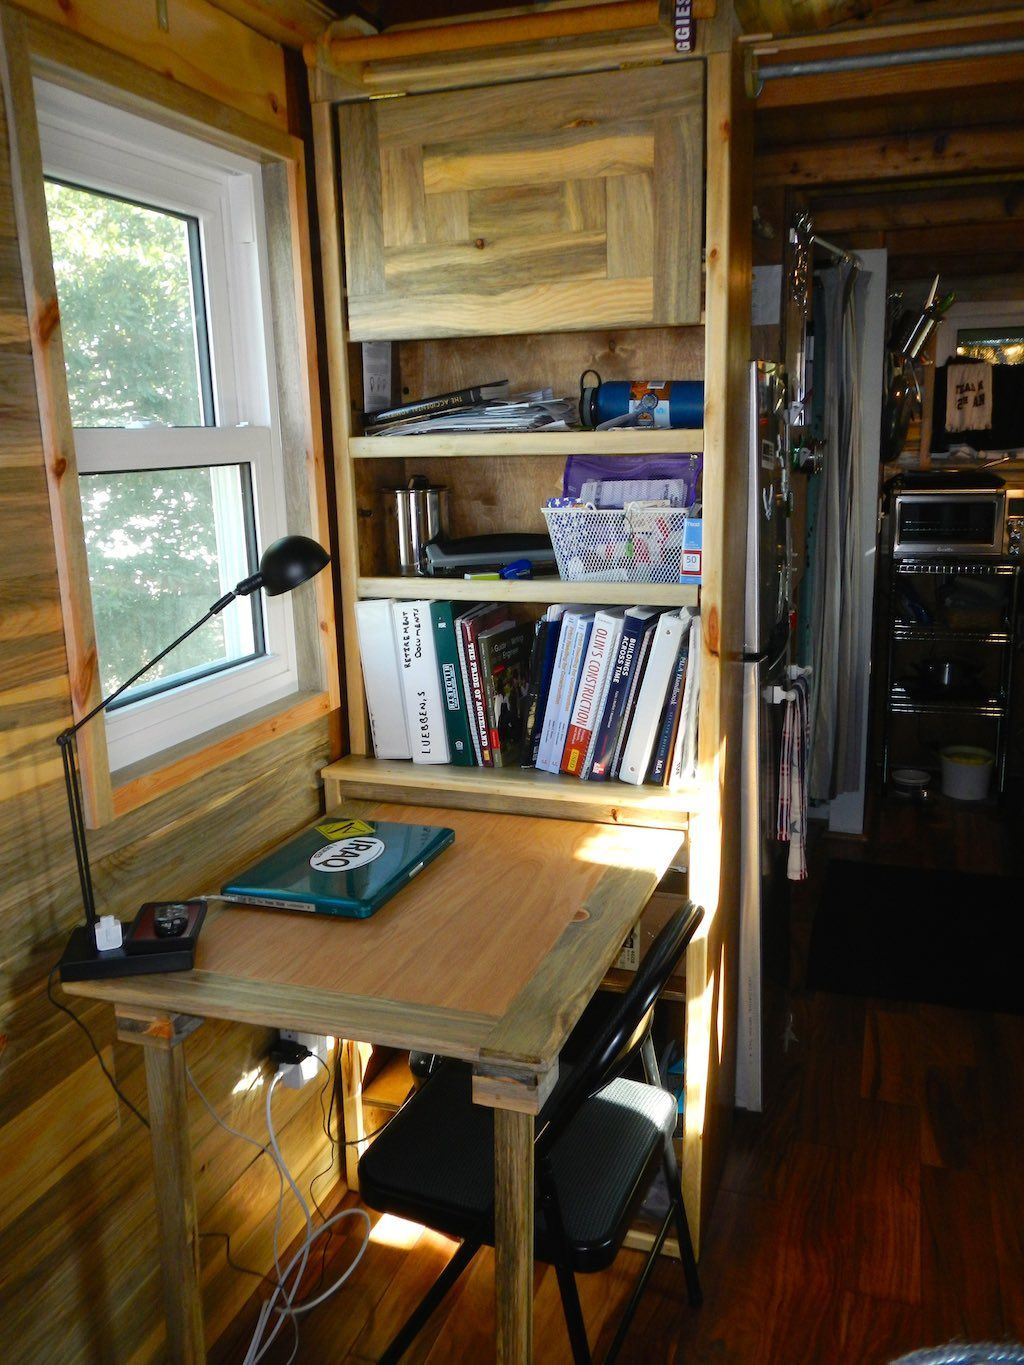 Stephani's tiny house on wheels built to save money while in college in College Station, Texas   pinned by haw-creek.com